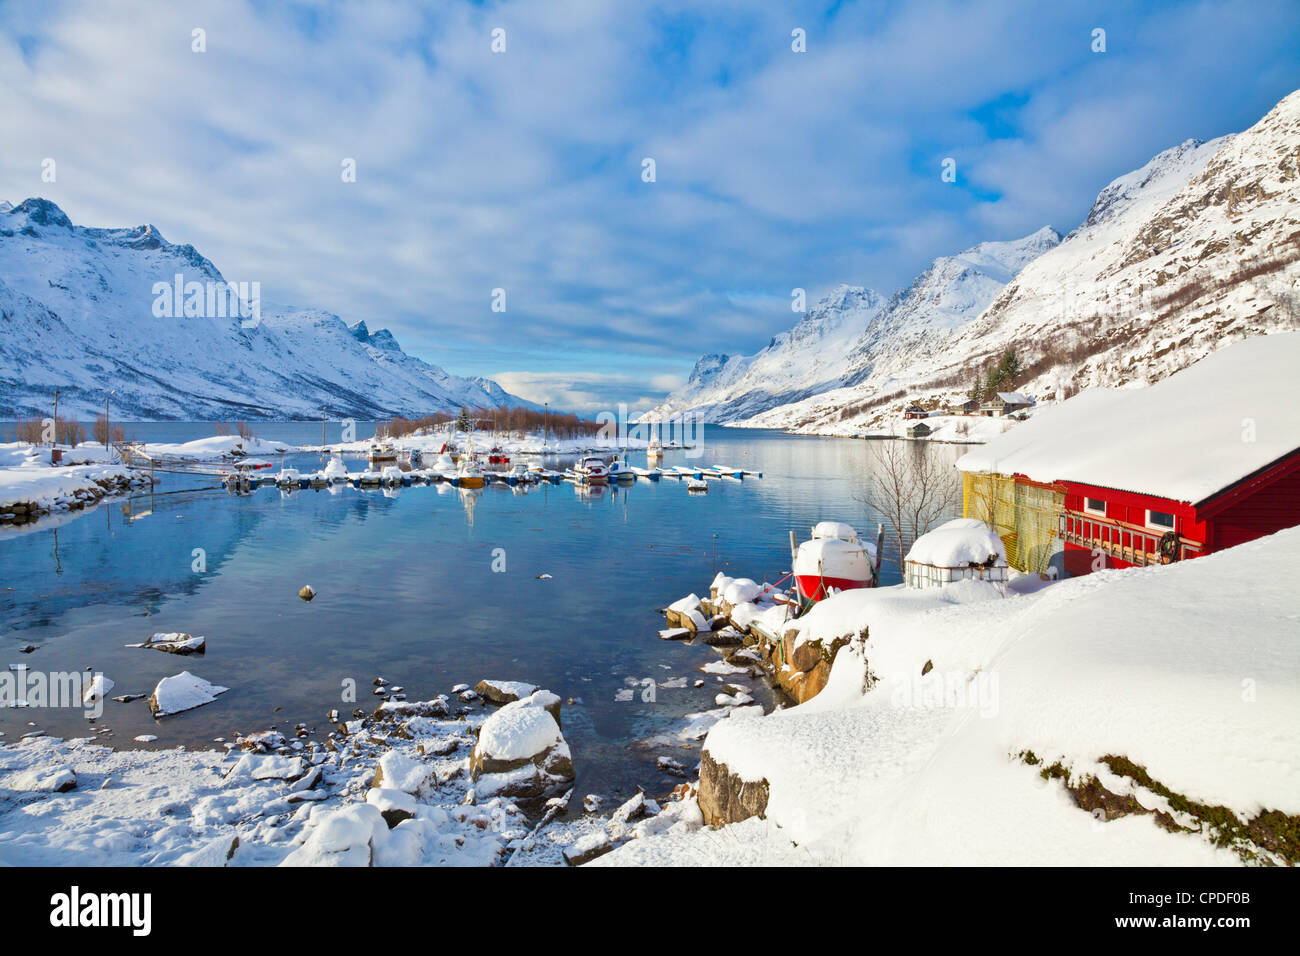 Snow covered mountains, boathouse and moorings in Norwegian fjord village of Ersfjord, Kvaloya island, Troms, Norway - Stock Image